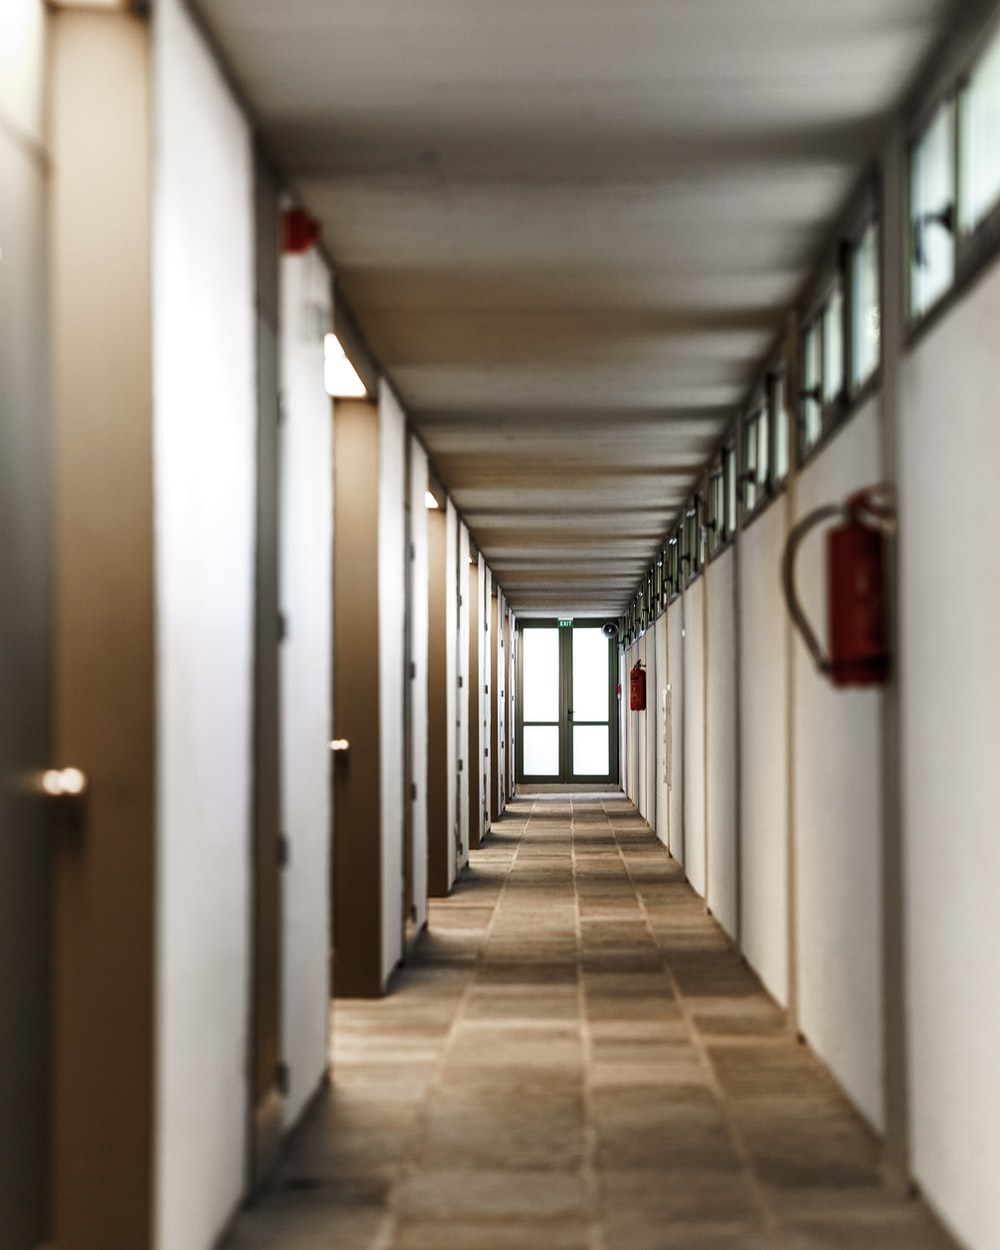 white hallway with red fire extinguisher